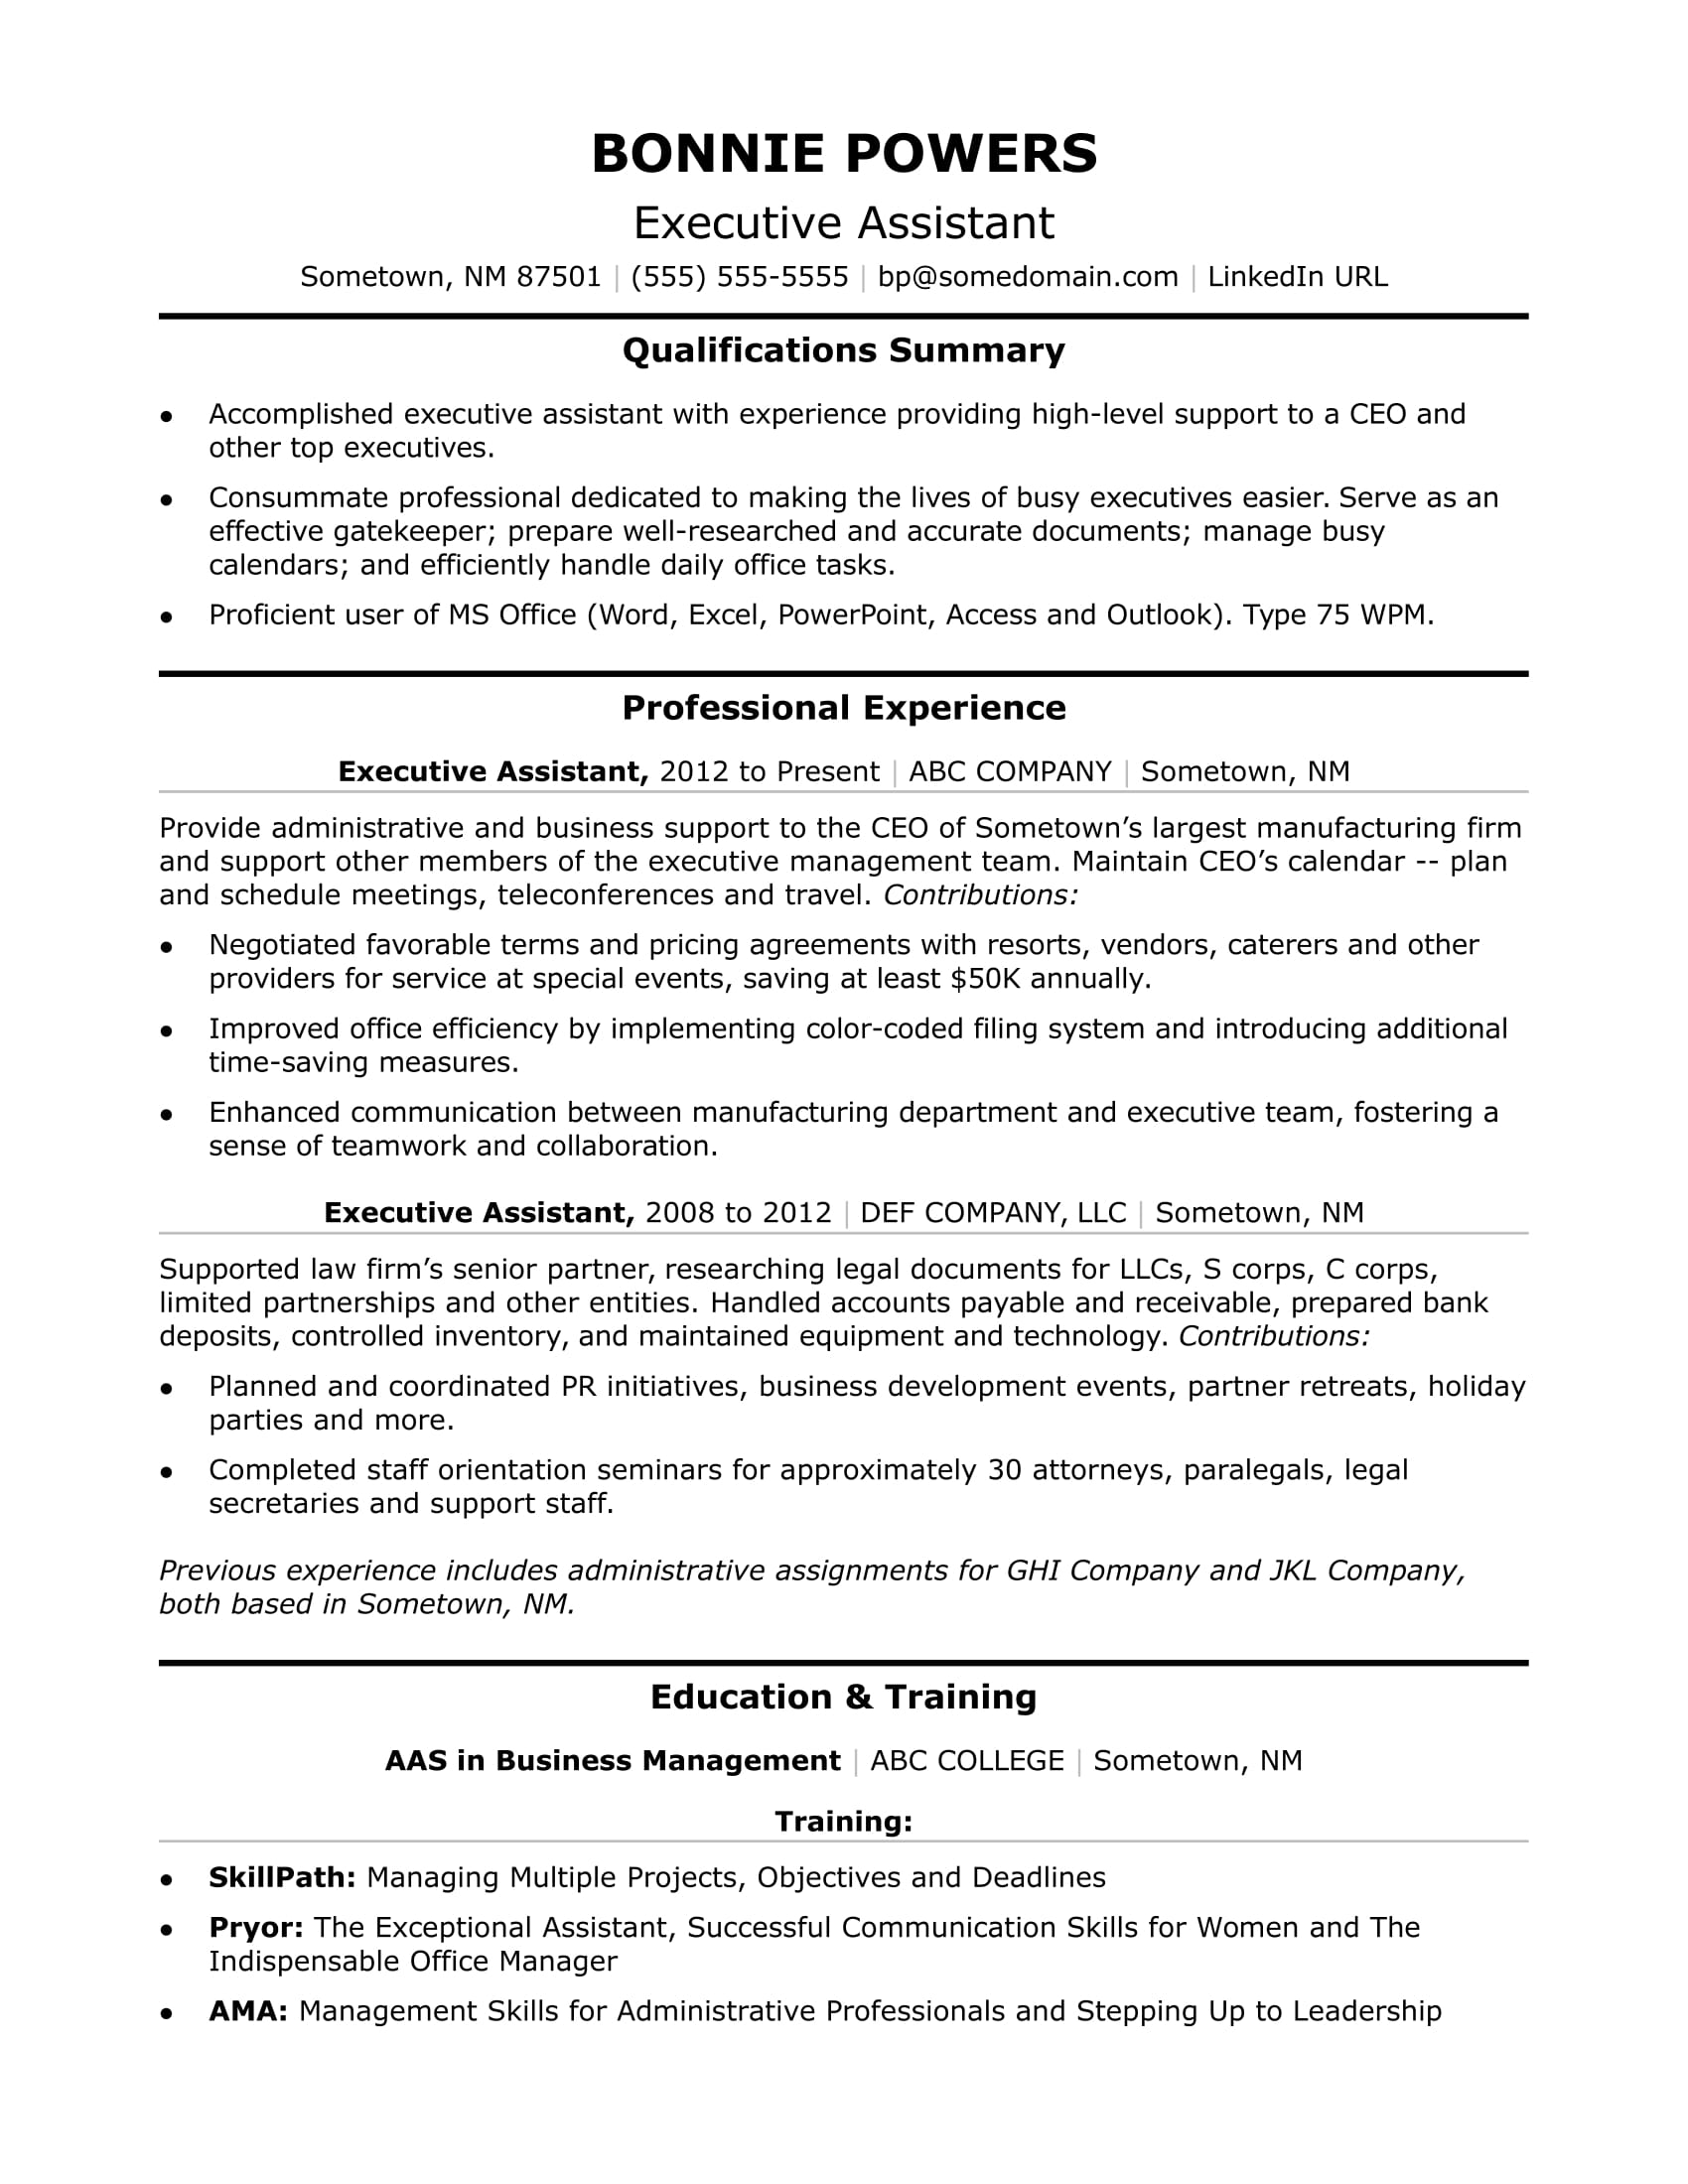 executive administrative assistant resume sample - Admin Assistant Resume Template